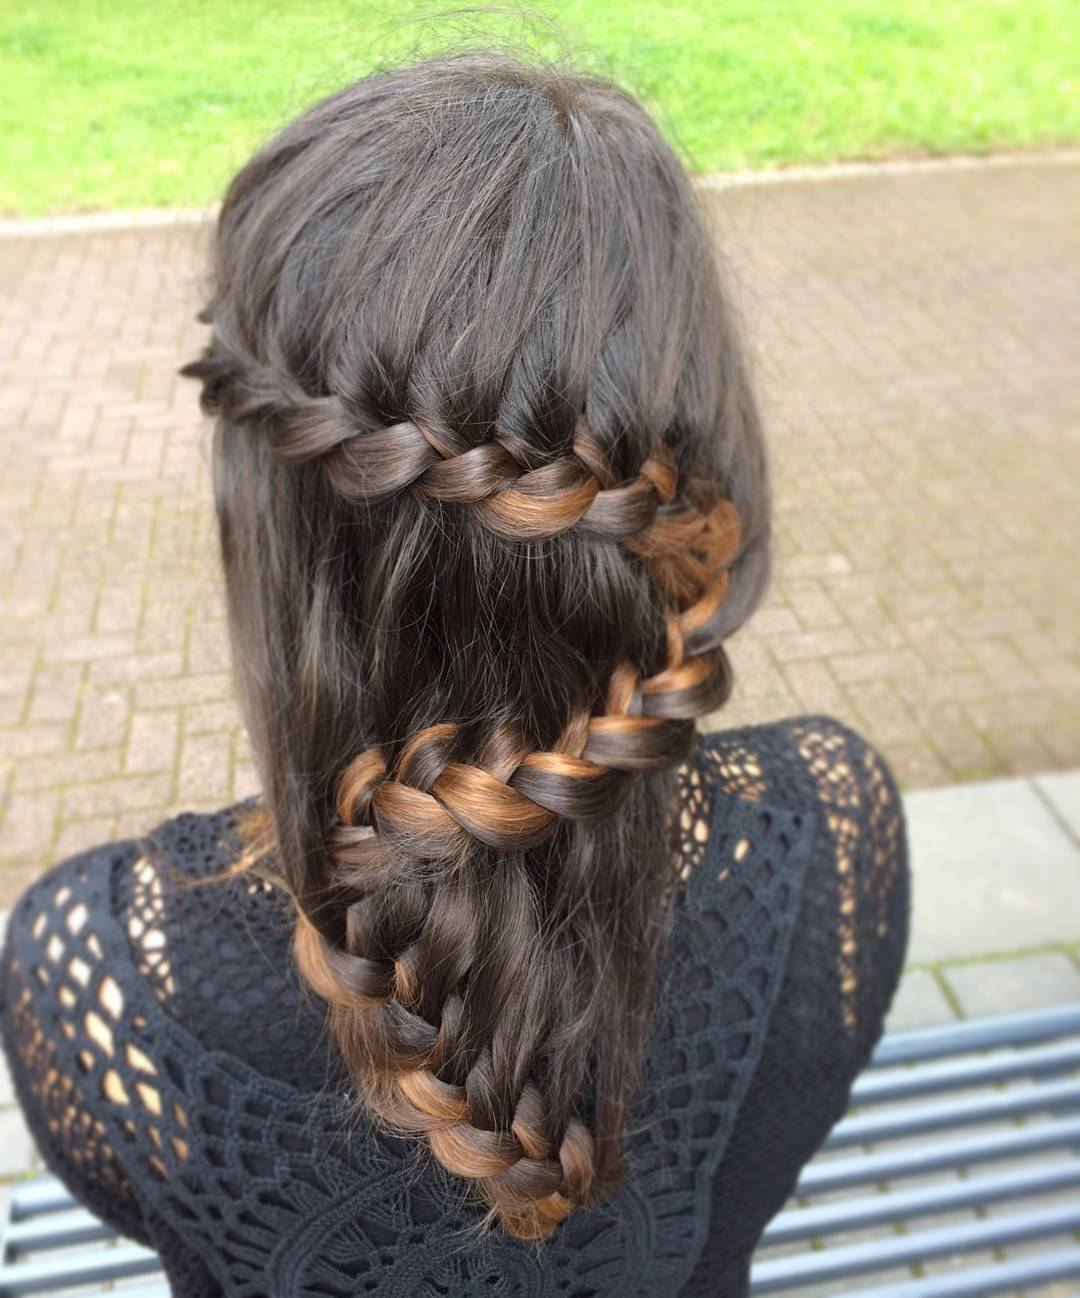 braidsbunsandmore-snake-braid-long-hair